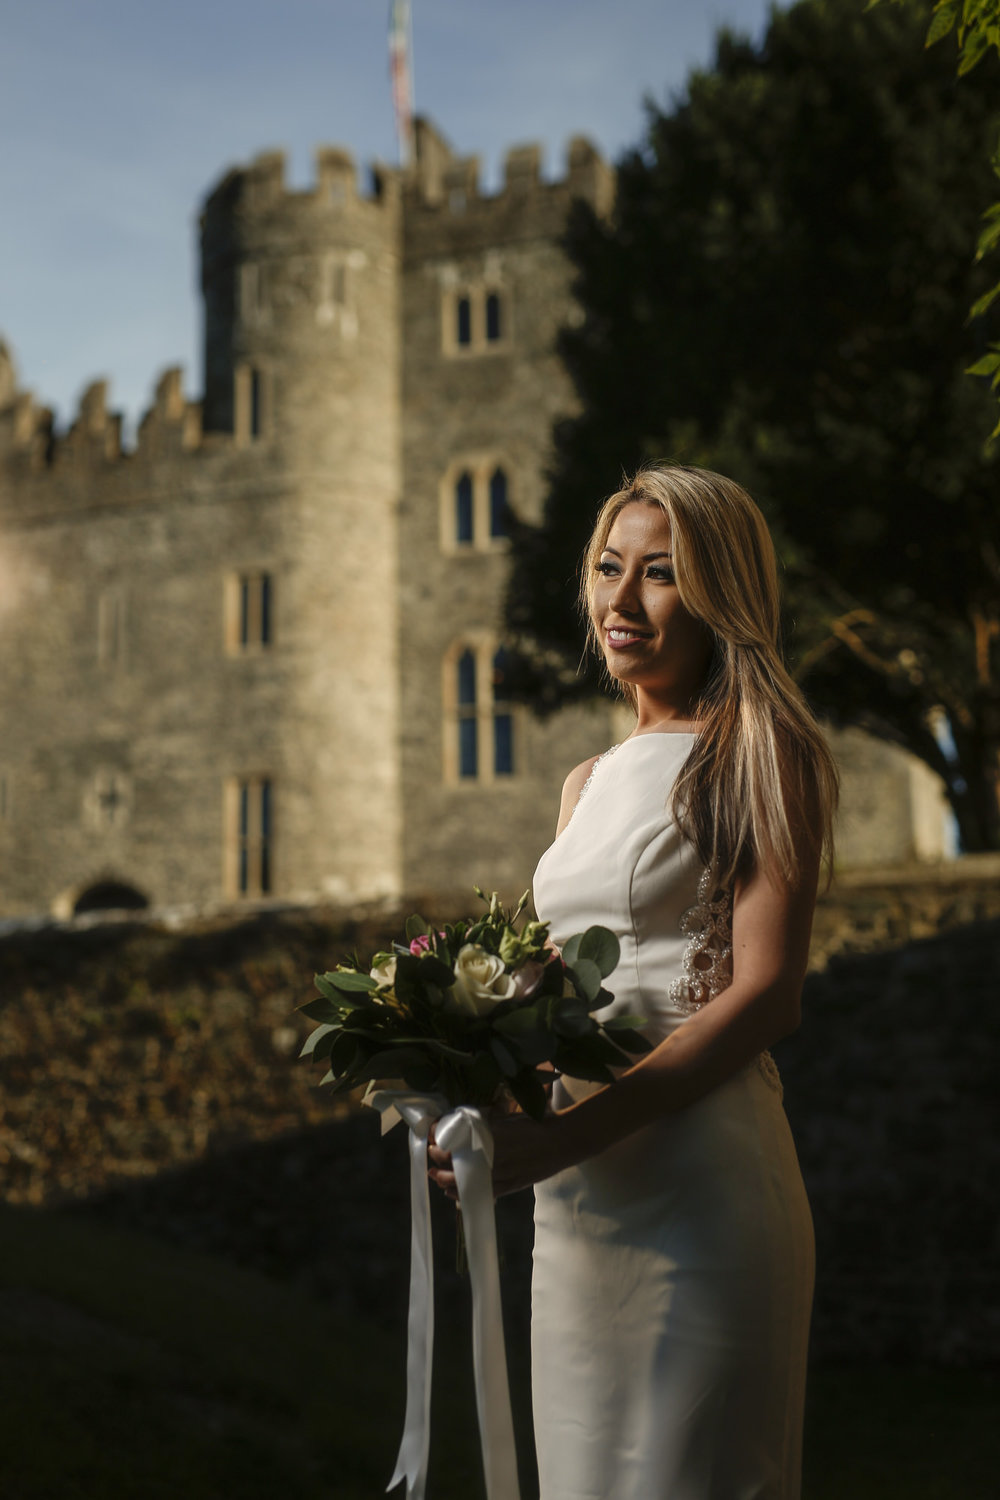 kilkea_castle_wedding_photographer_goldenmoments_042.jpg